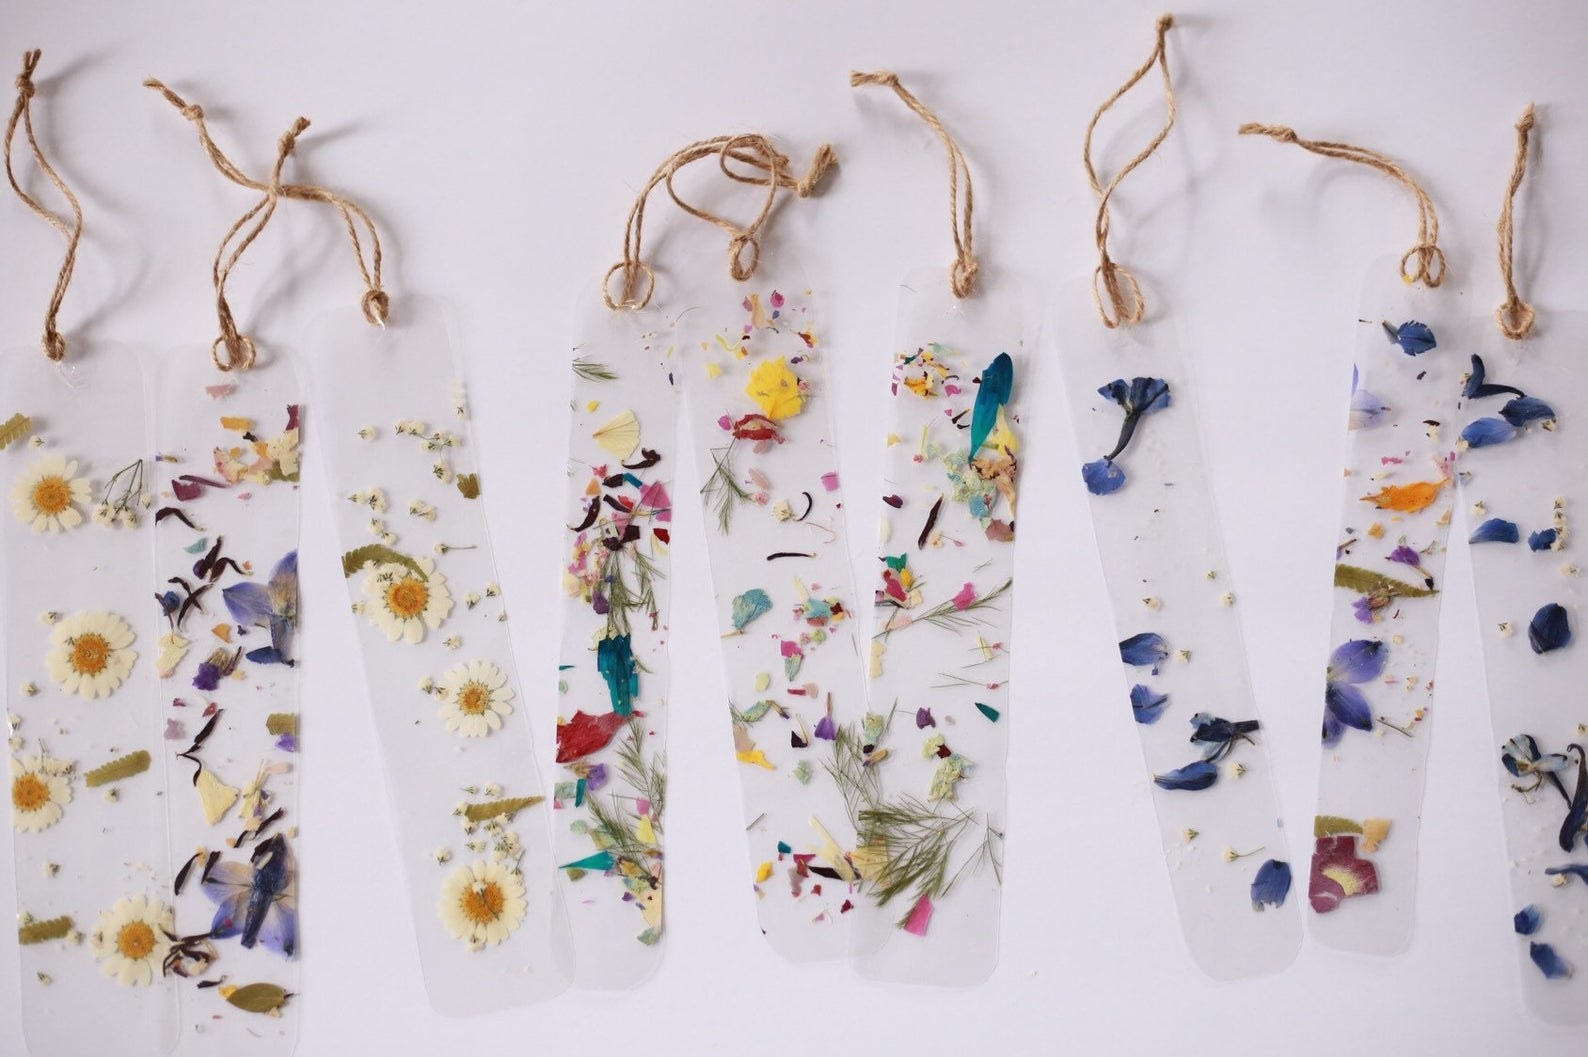 Transparent bookmarks with dried pressed flowers in them